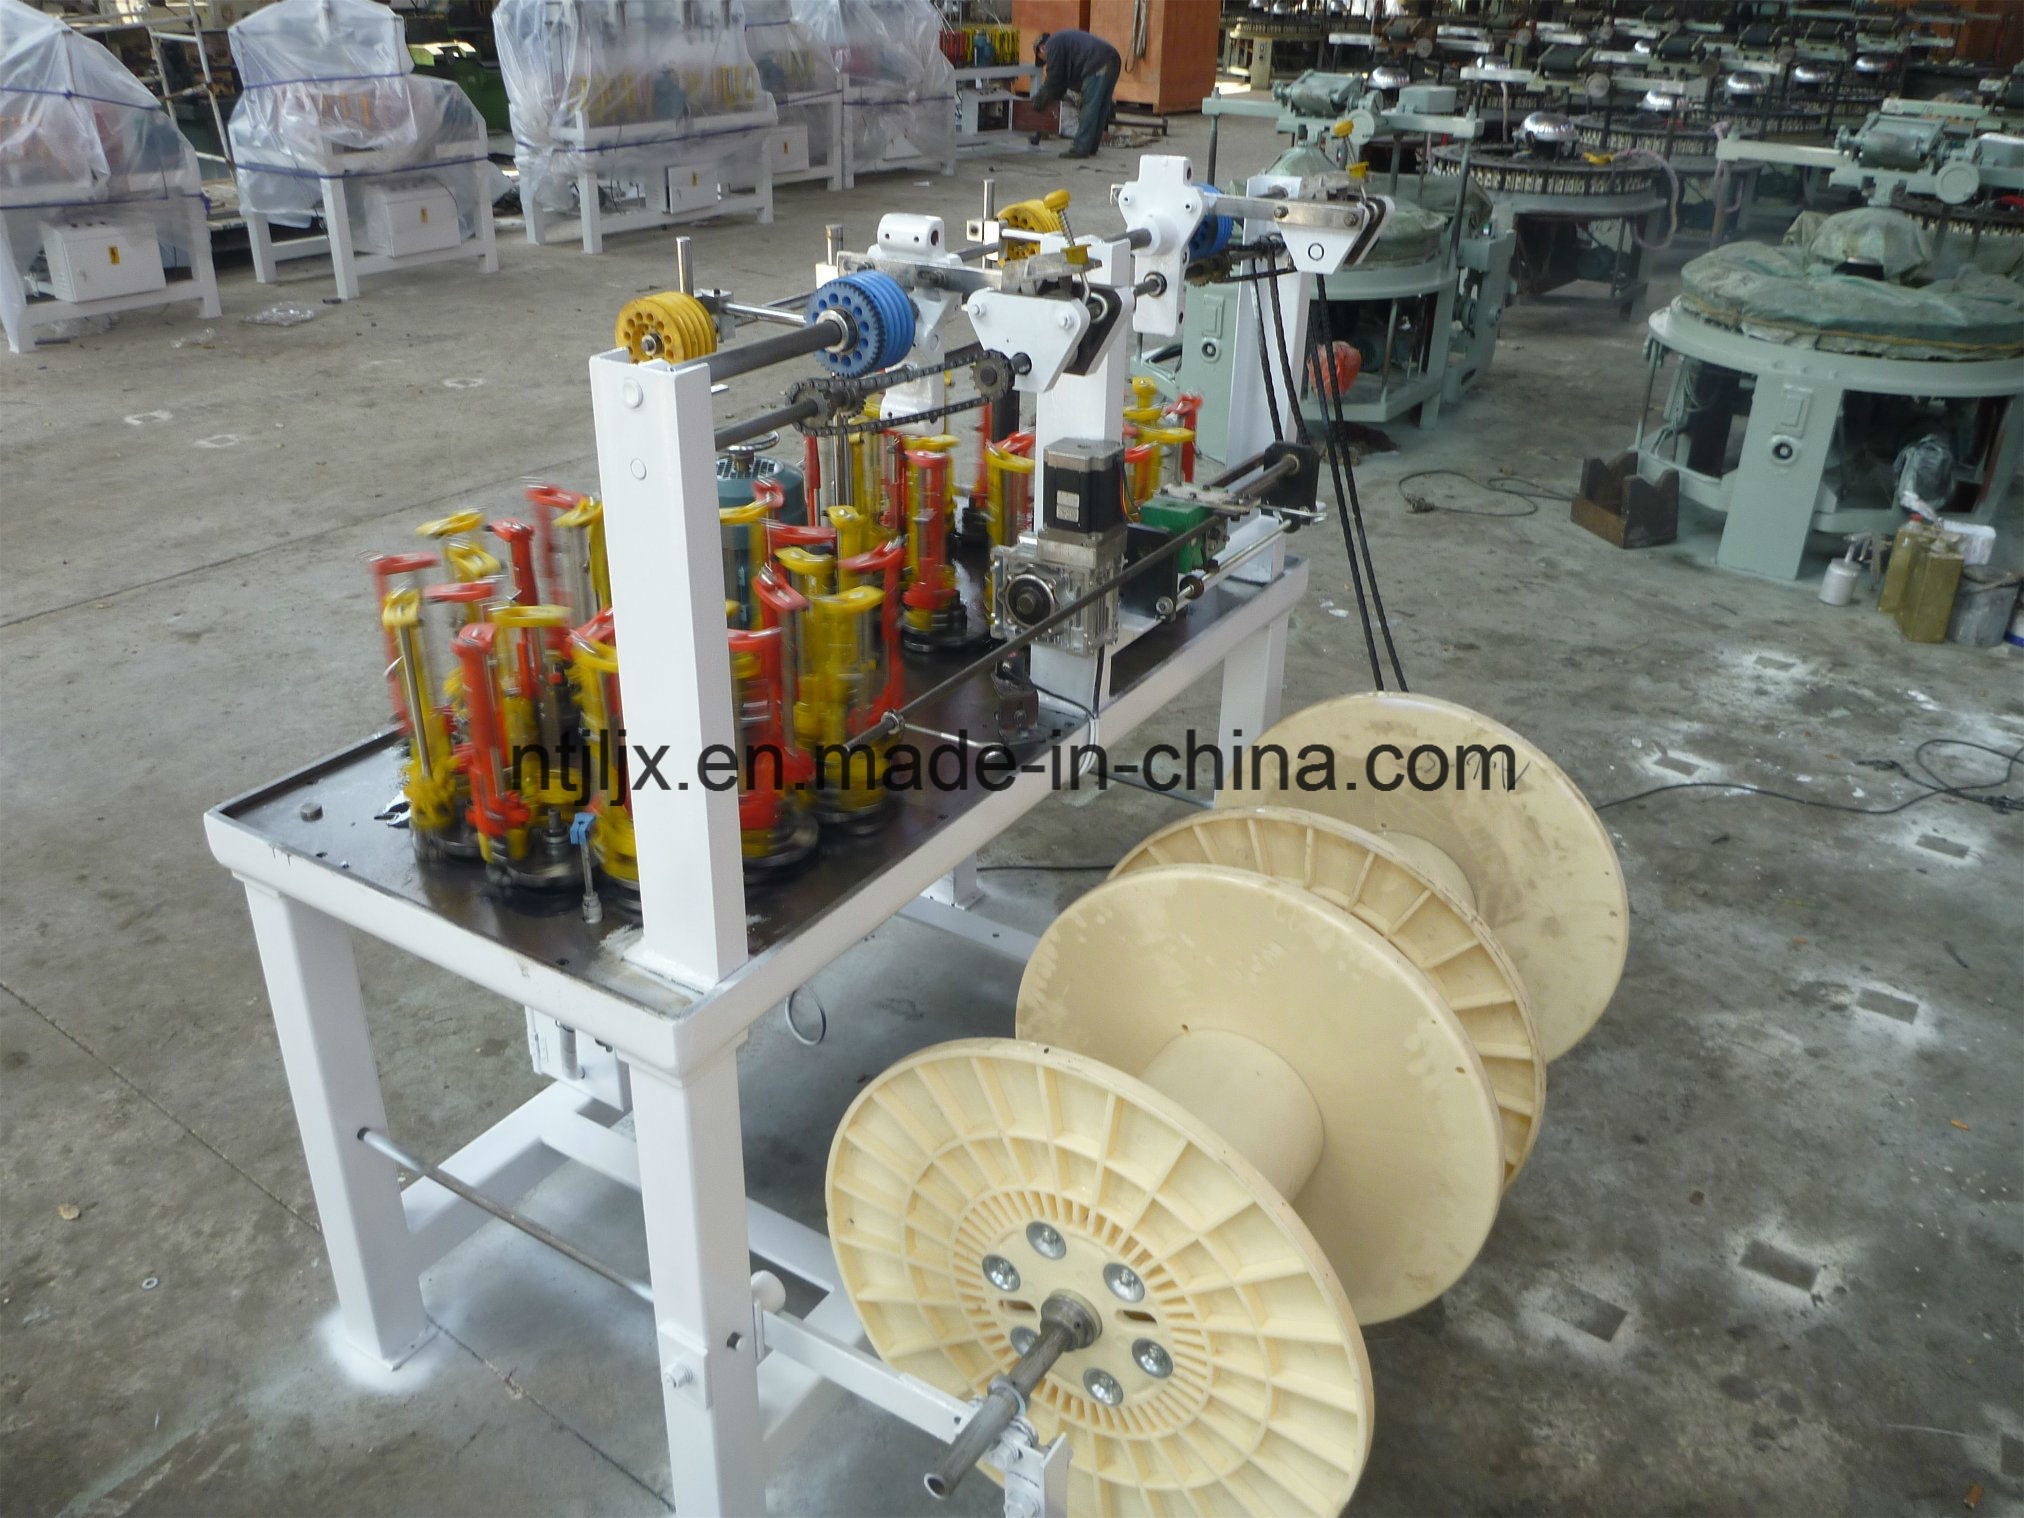 High Speed Weaving Machine 24*1